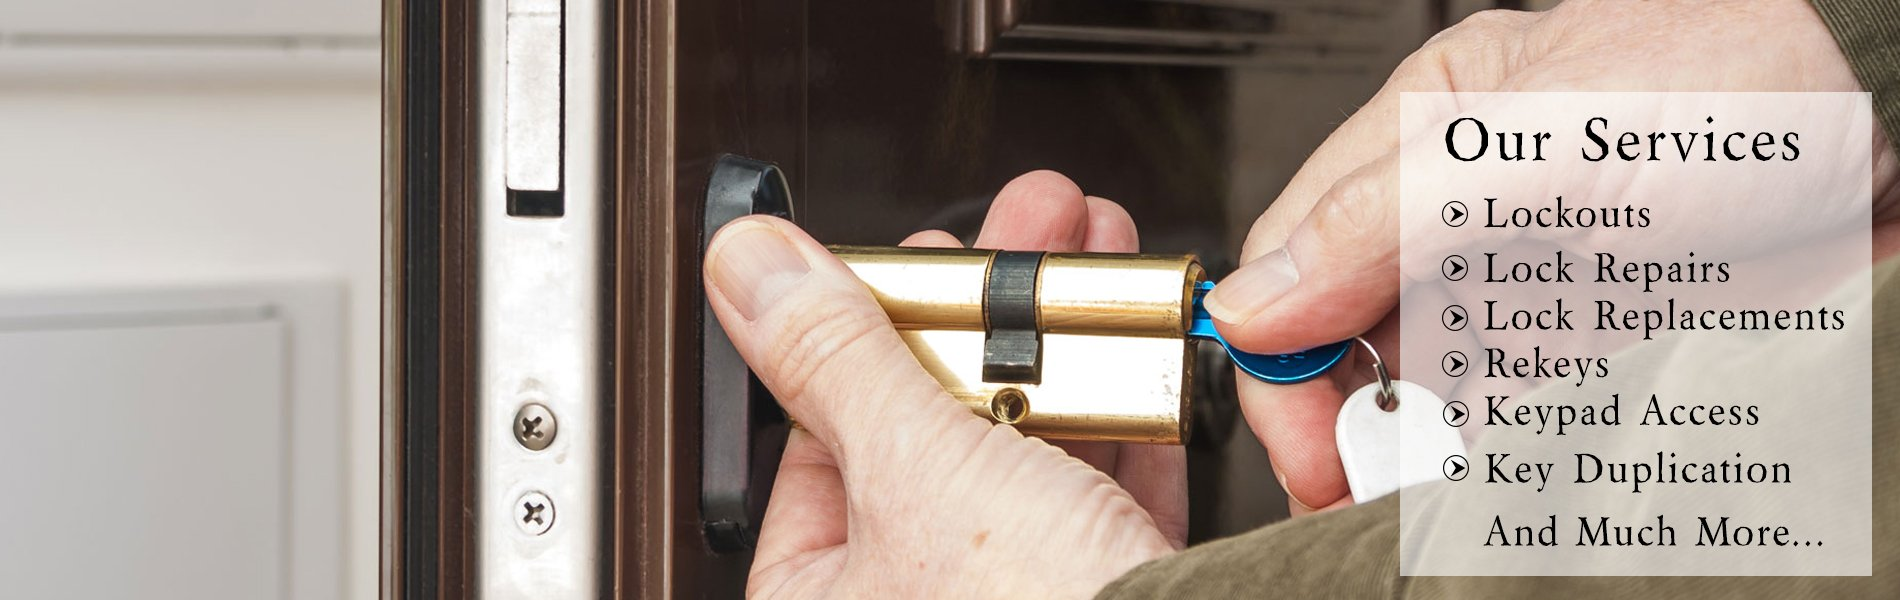 community Locksmith Store San Diego, CA 858-365-1473